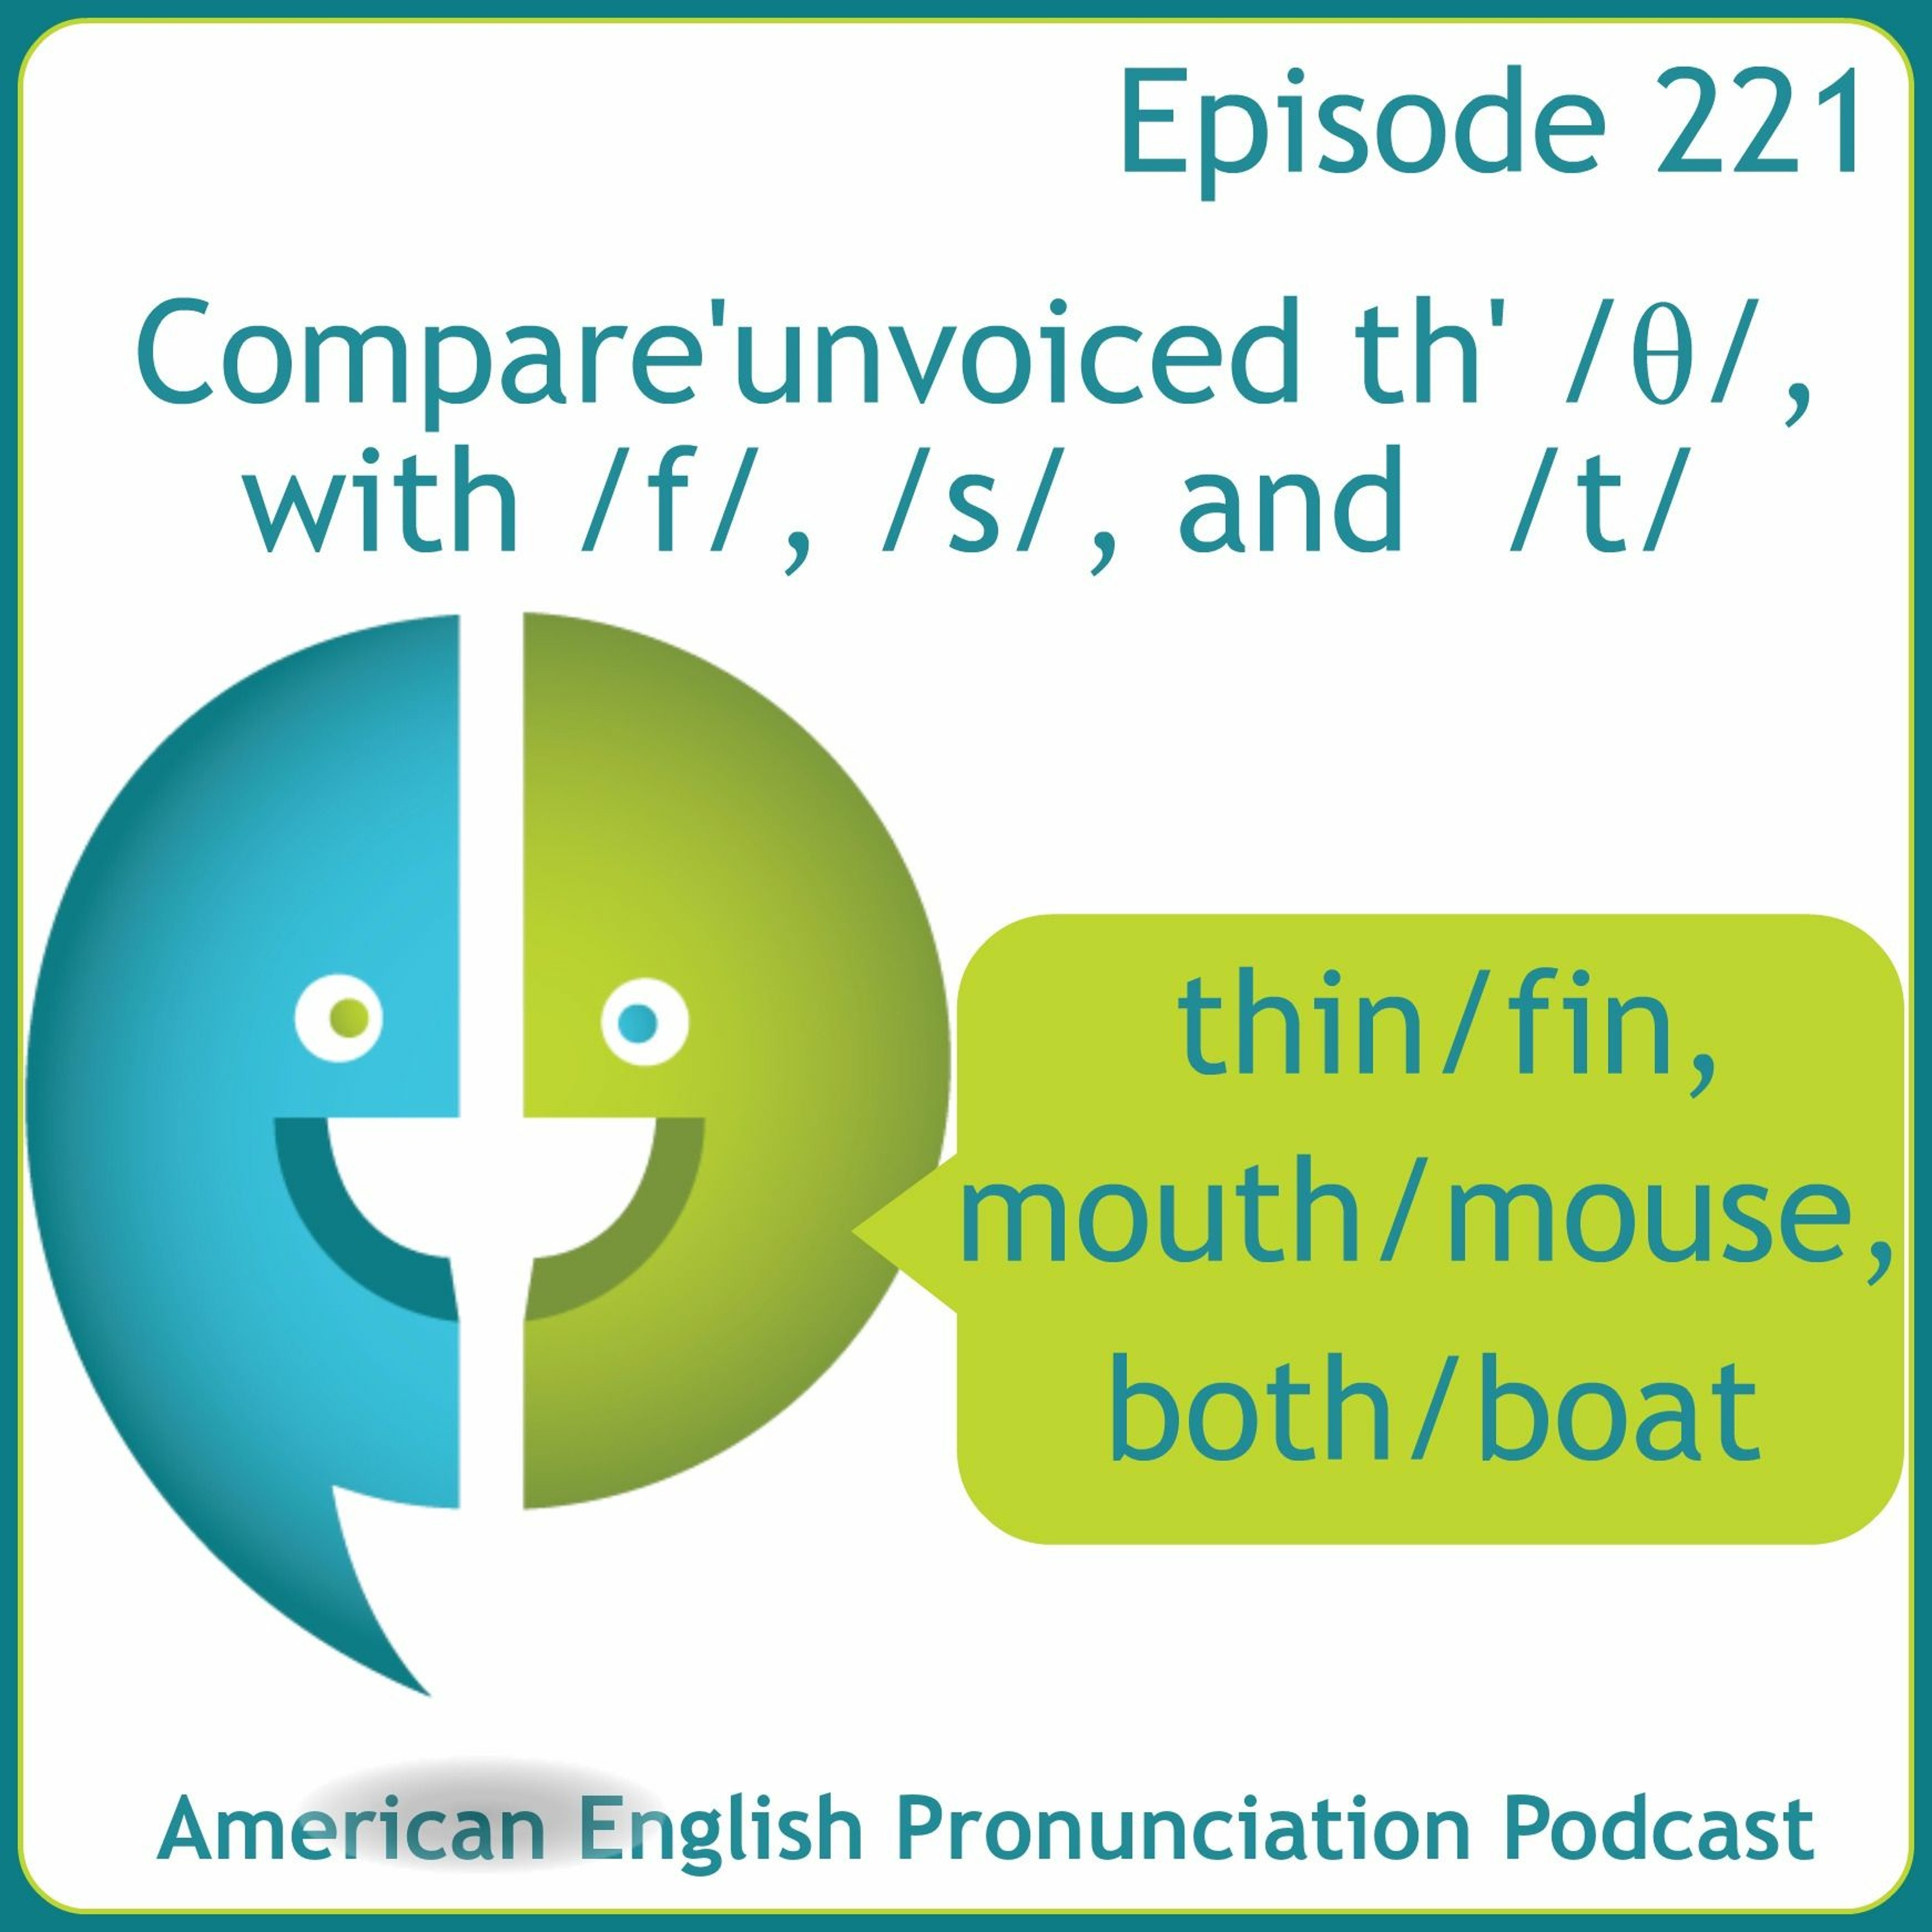 221: Compare 'unvoiced th' to /f/, /s/, and /t/